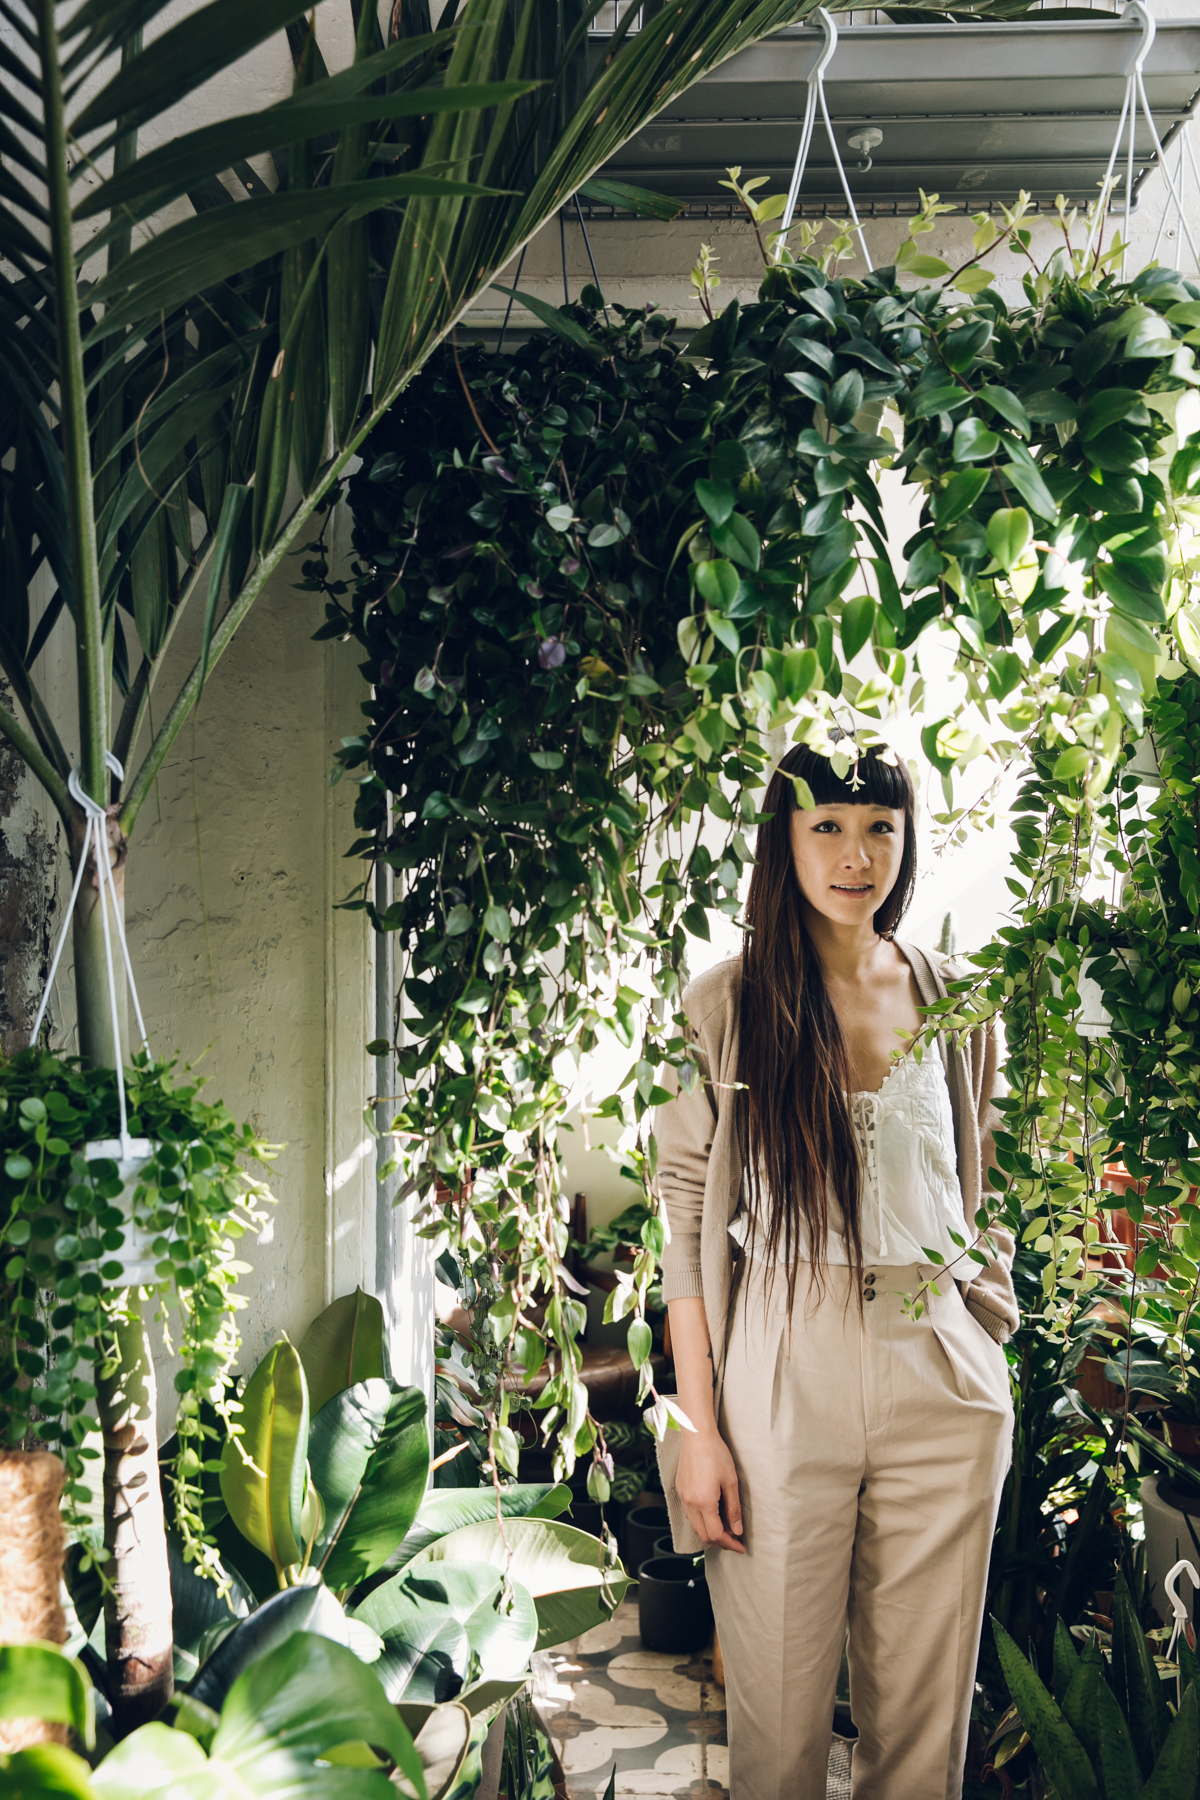 Horticulturist Jin Ahn amongst the plants in her shop, Conservatory Archives.